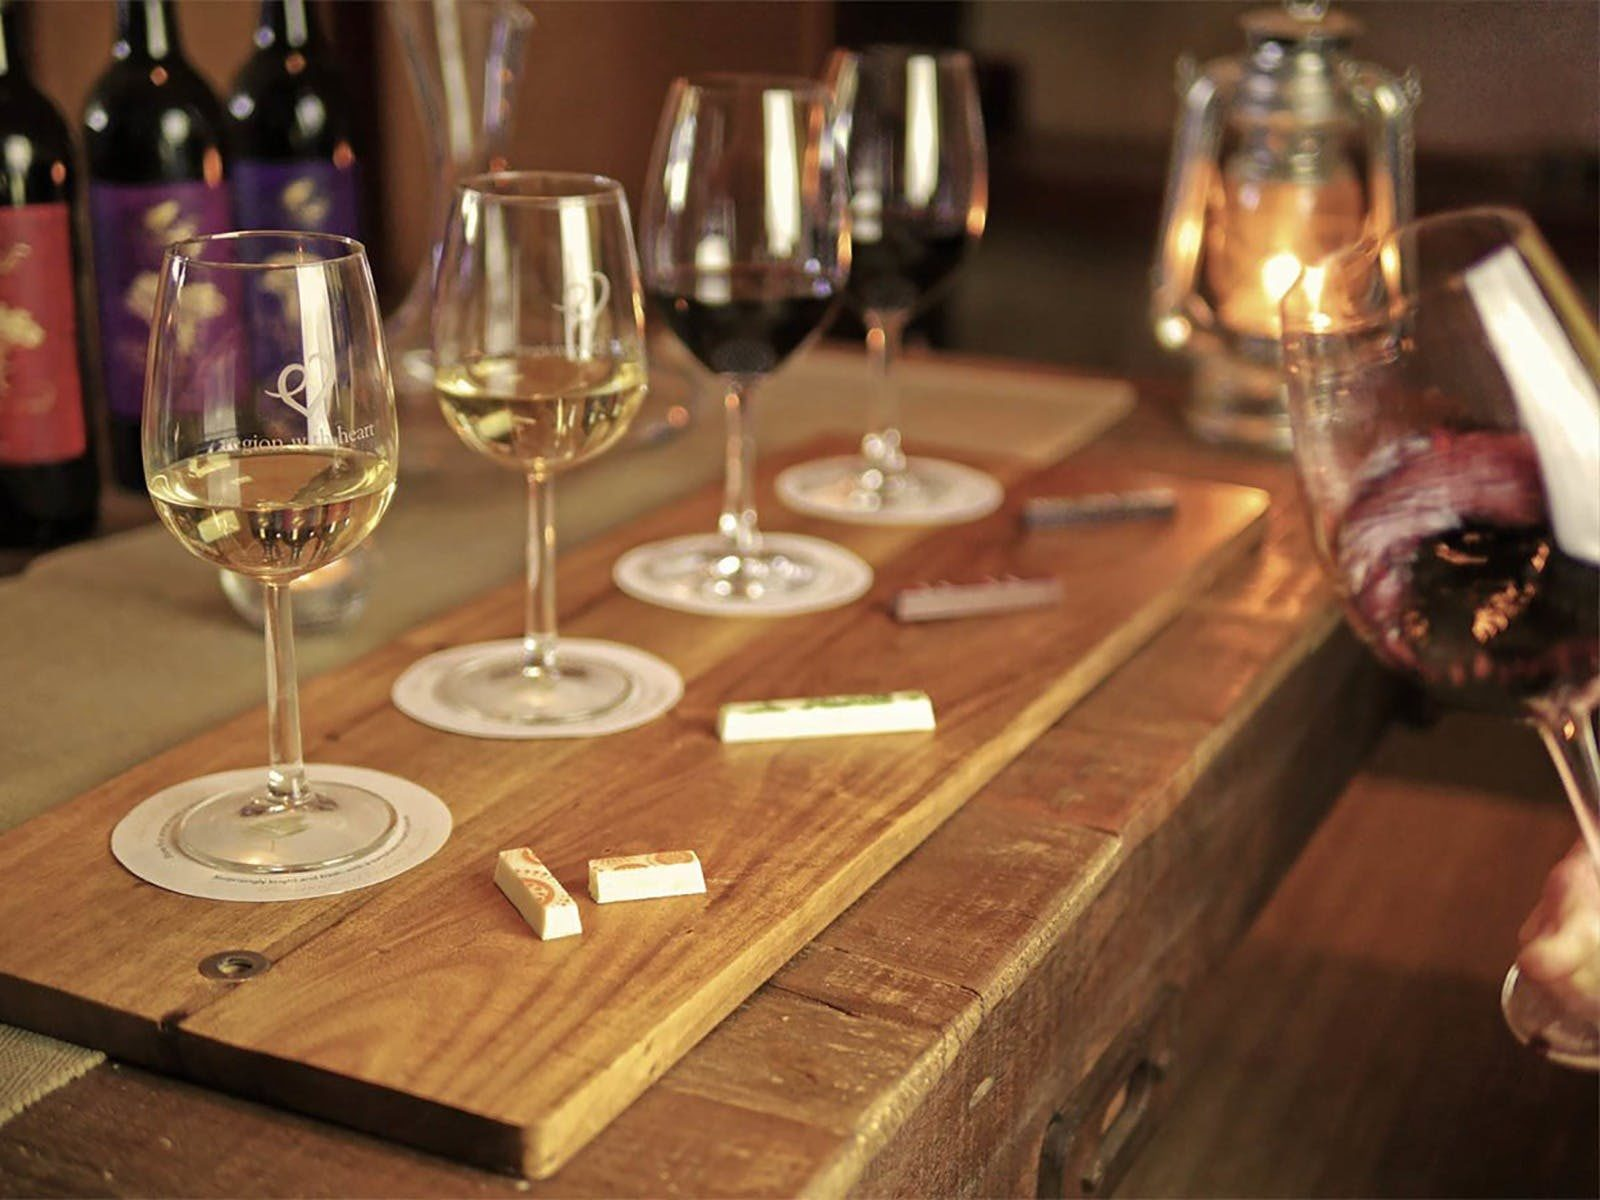 A wine and chocolate pairing set up with 4 wines and 4 chocolate bars on a wooden board